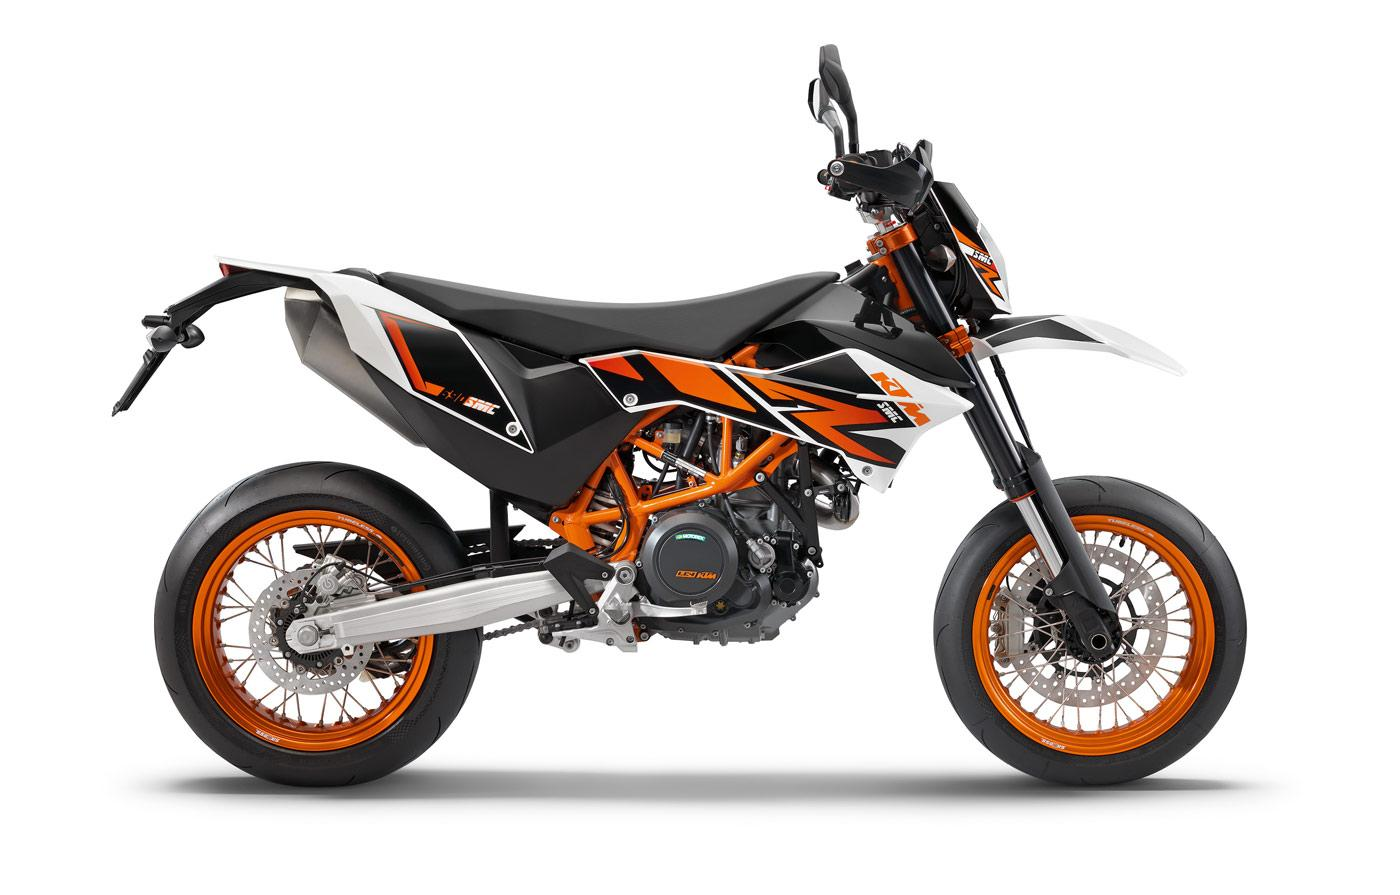 ktm 690 smc r 2014 motorrad fotos motorrad bilder. Black Bedroom Furniture Sets. Home Design Ideas